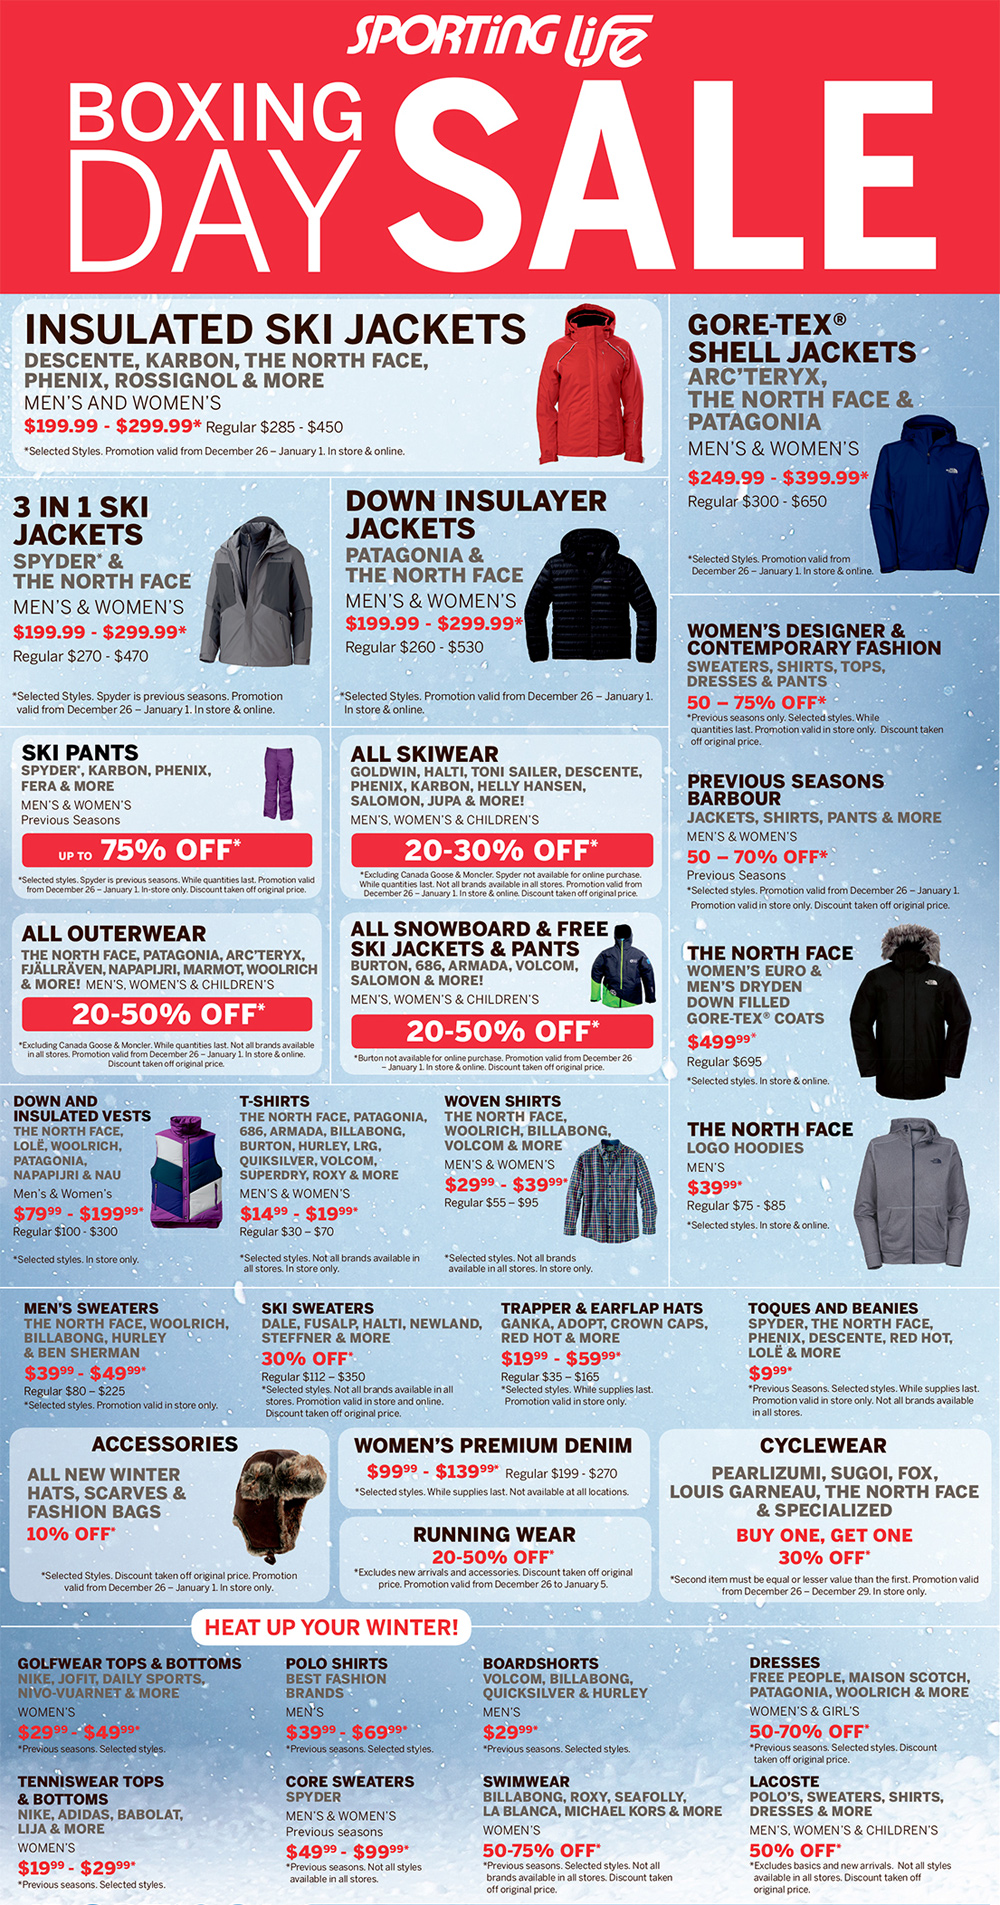 1504b43c92 Sporting Life Boxing Day Flyer Sales and Deals Canada 2013.  PROMOTIONS BOXDAY PG1 DEC24. Check out Sporting Life s ...